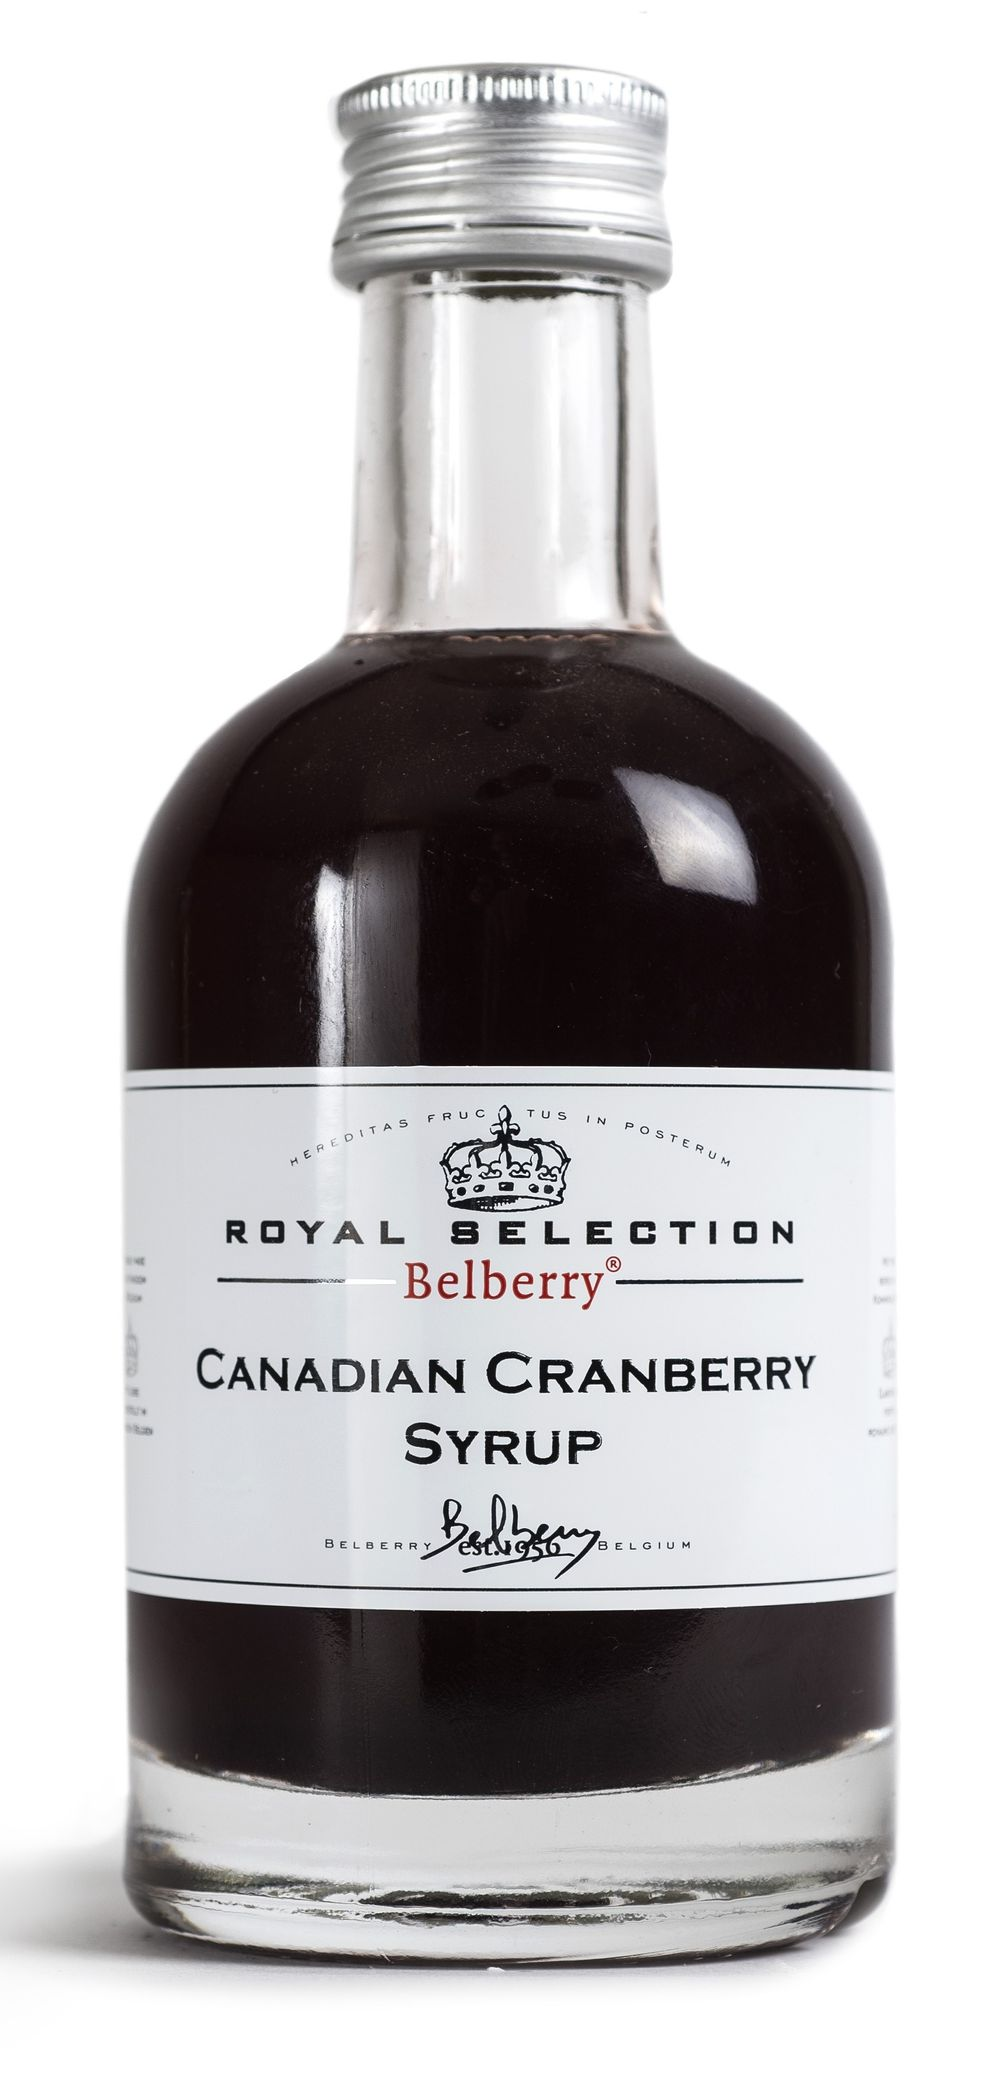 Canadian Cranberry Syrup